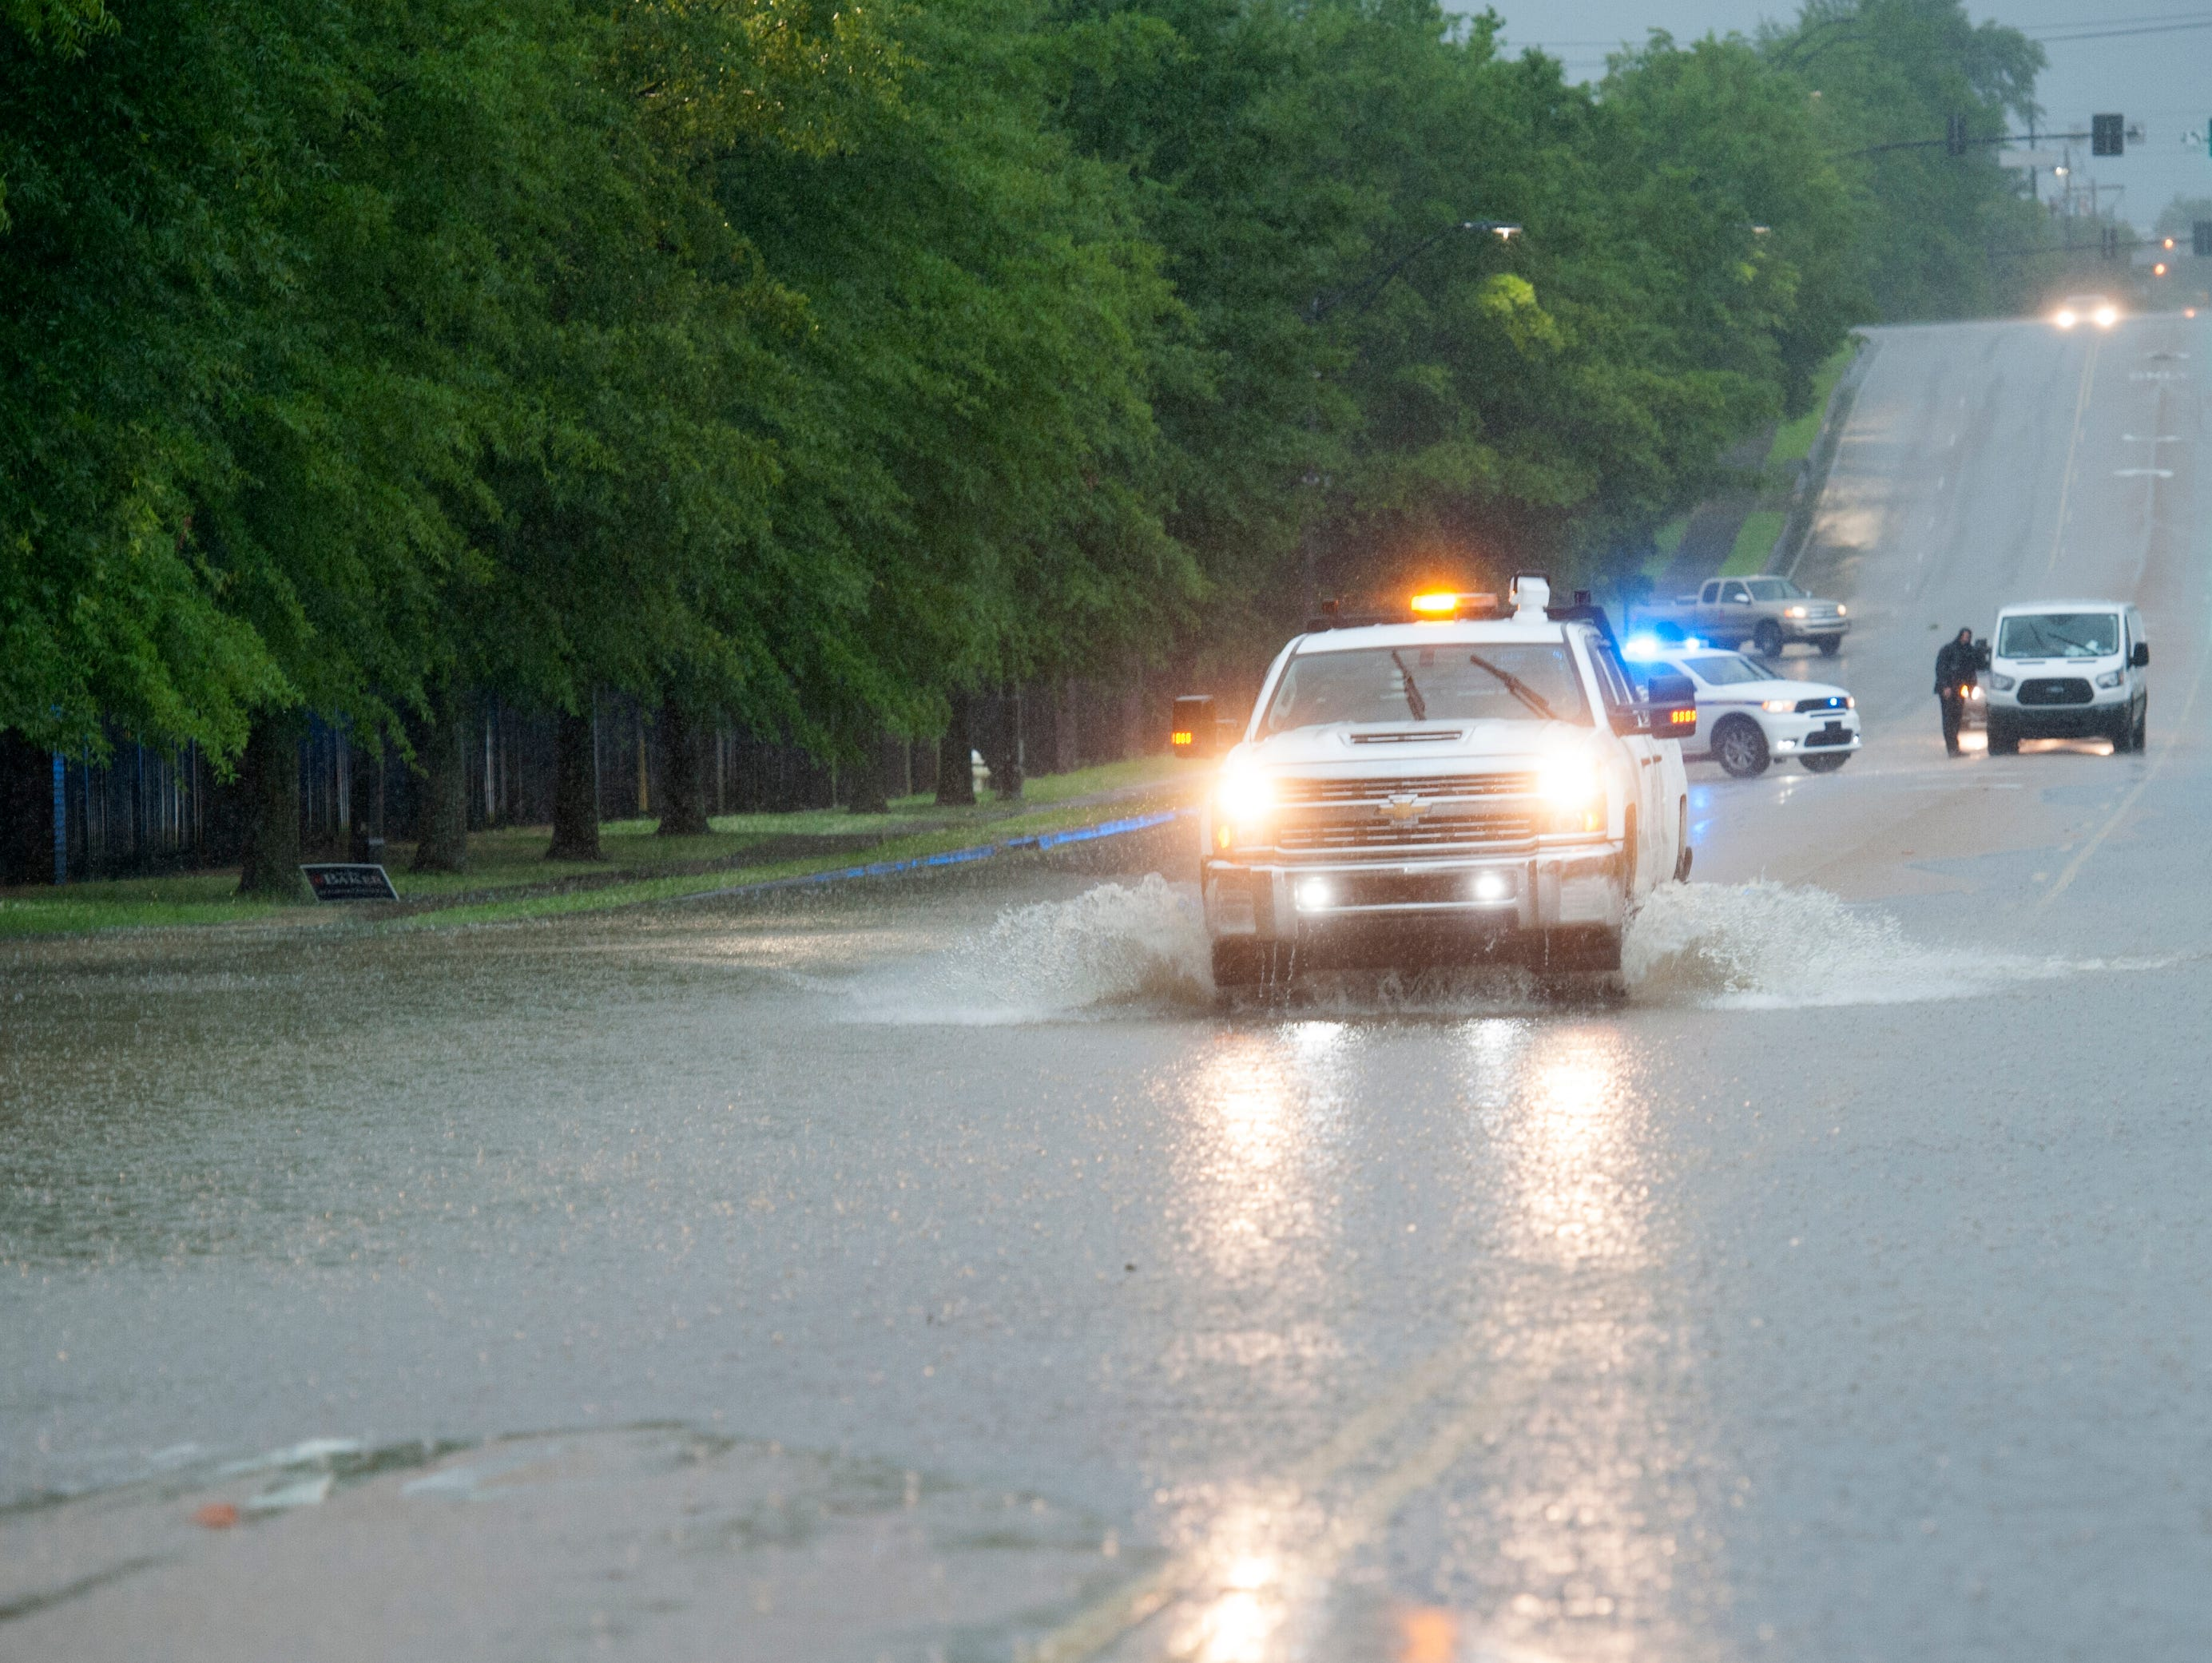 Some motorists venture into flood waters on the east end of High Street in Jackson, regardless of the police warning. Thunderstorms are expected to continue throughout the morning with rain tapering off this evening. Thursday, May 9, 2019